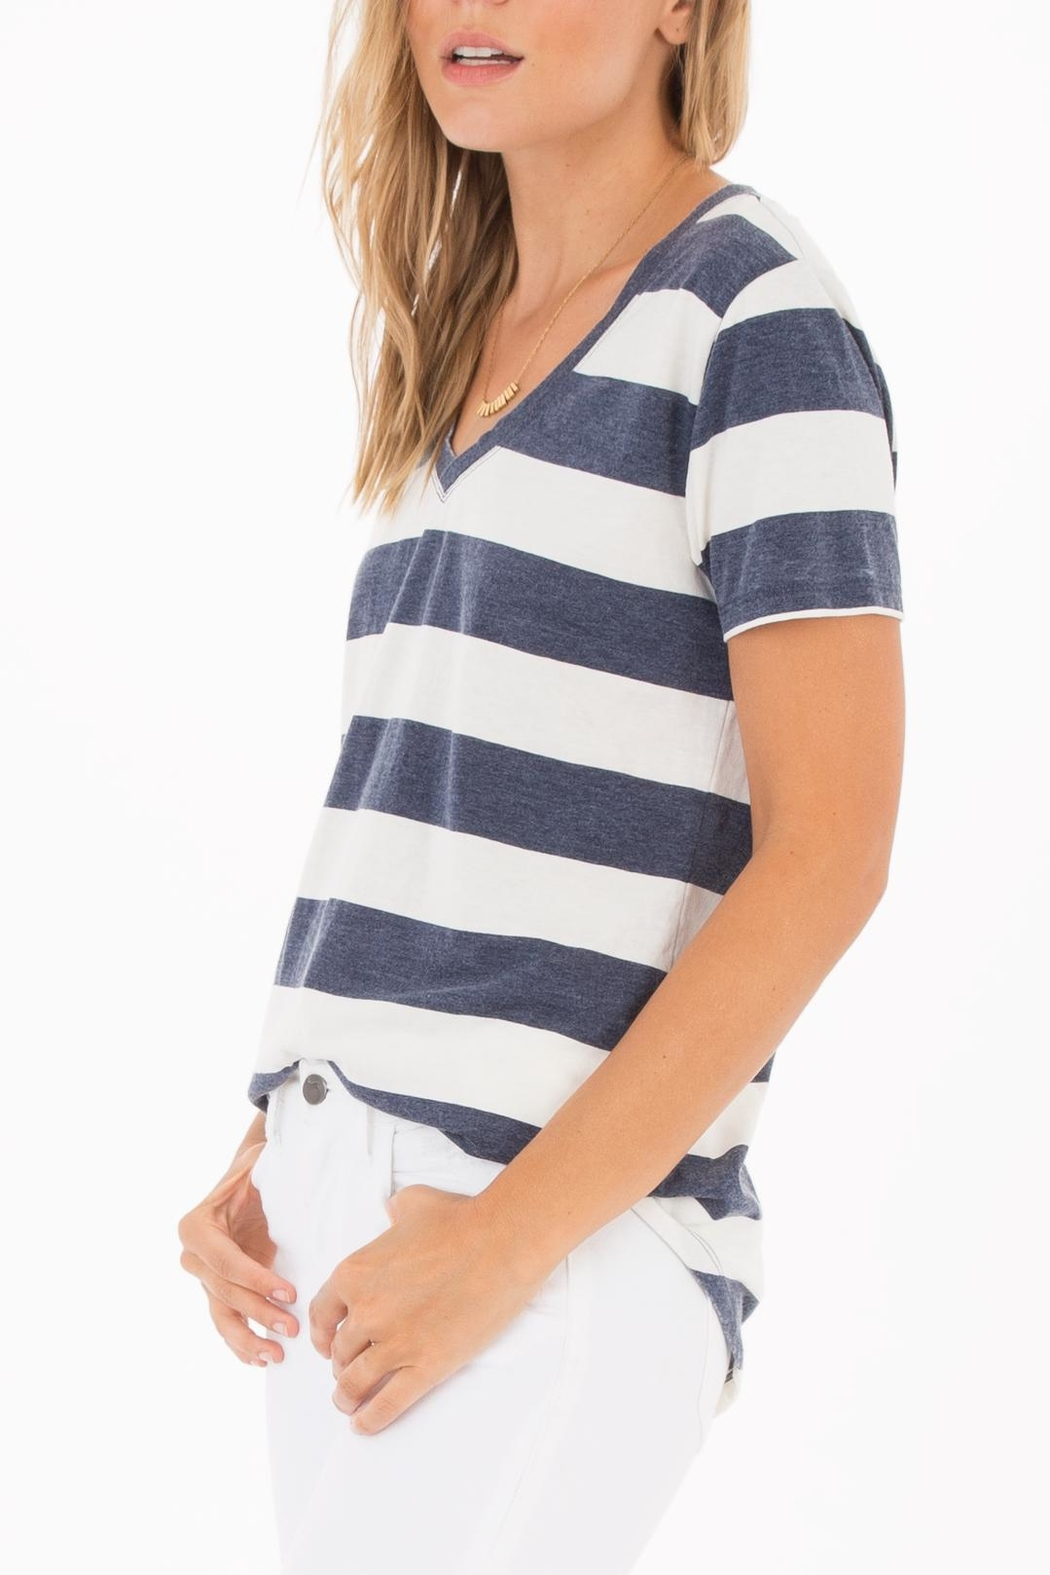 z supply Naples Striped Tee - Side Cropped Image